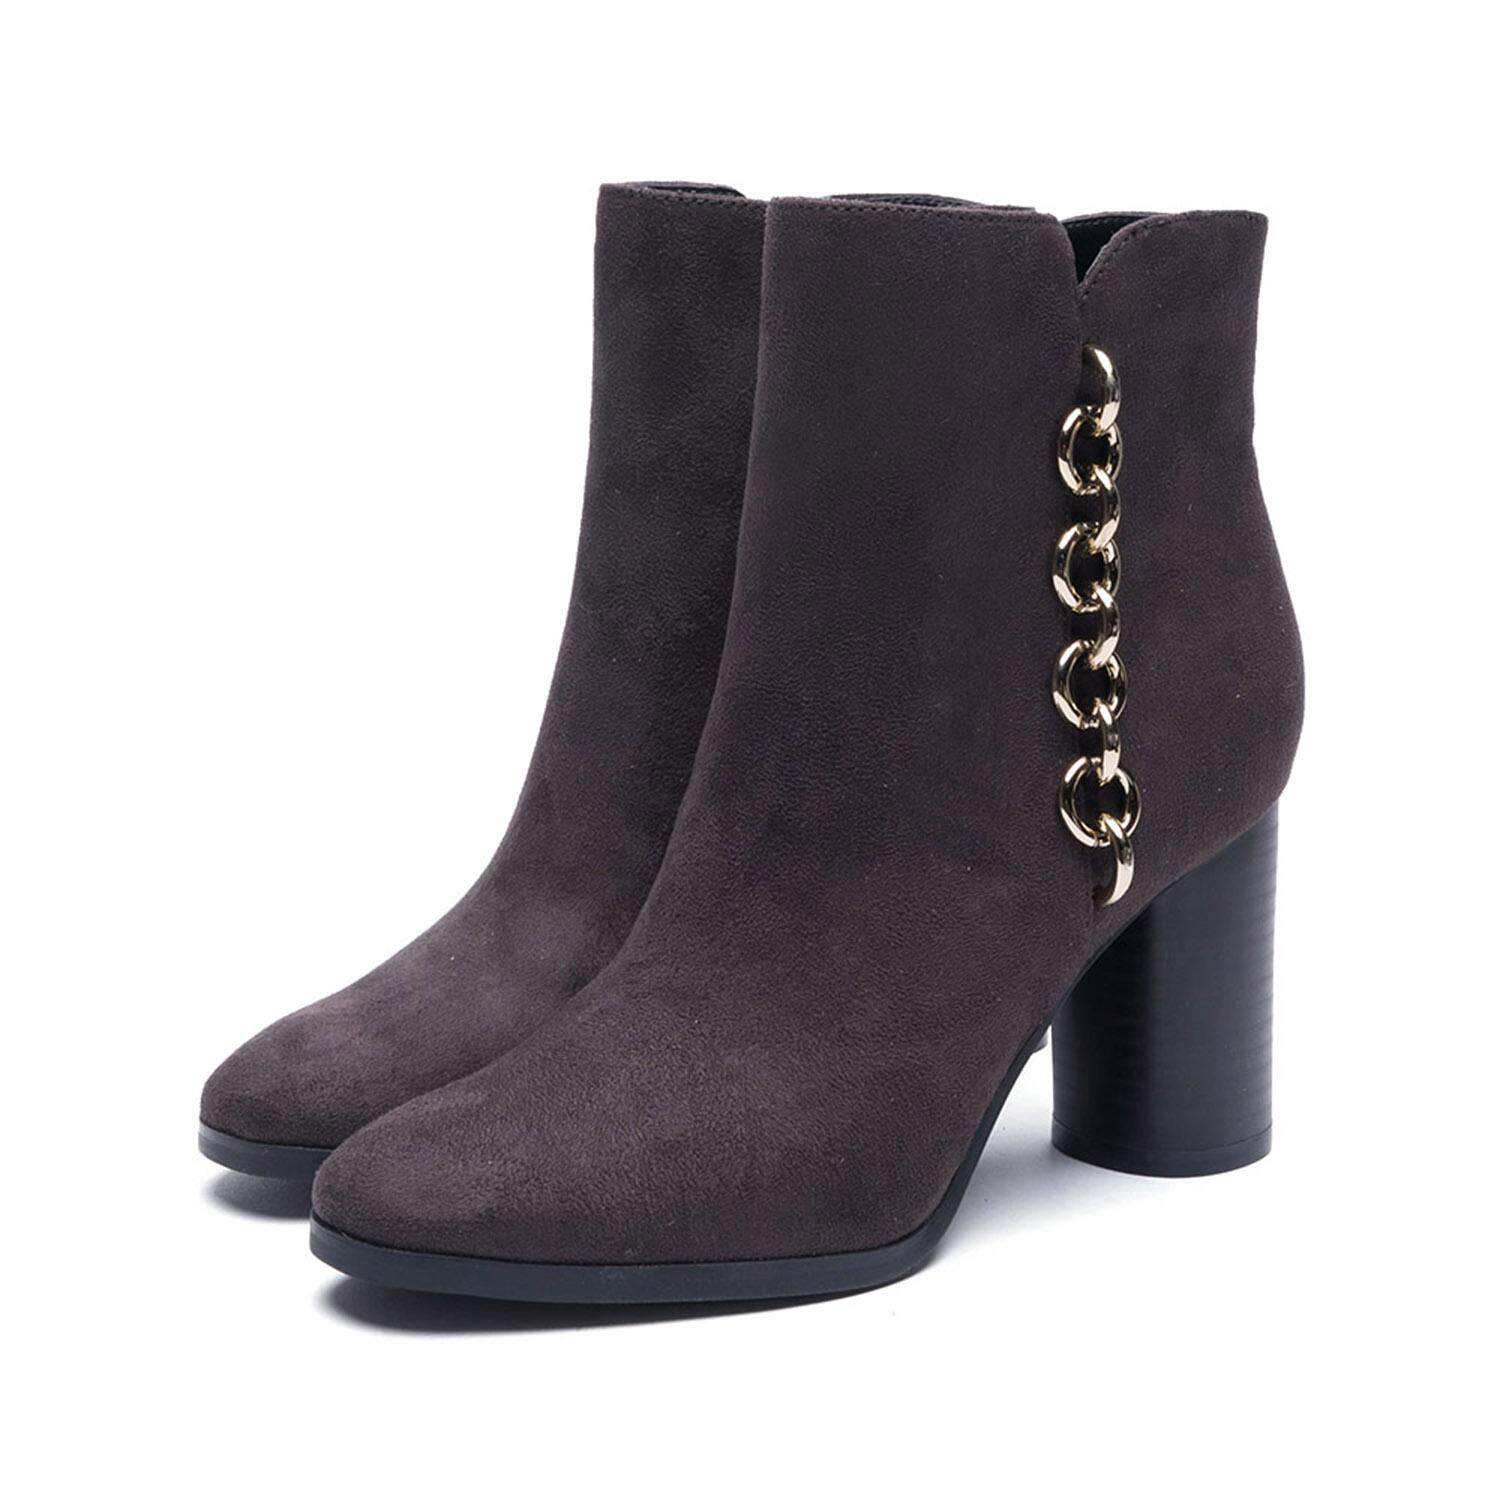 b13b128d9658 Daphne Heeled Ankle Boots Dark Grey with Side Zipper   Gold Chain detail